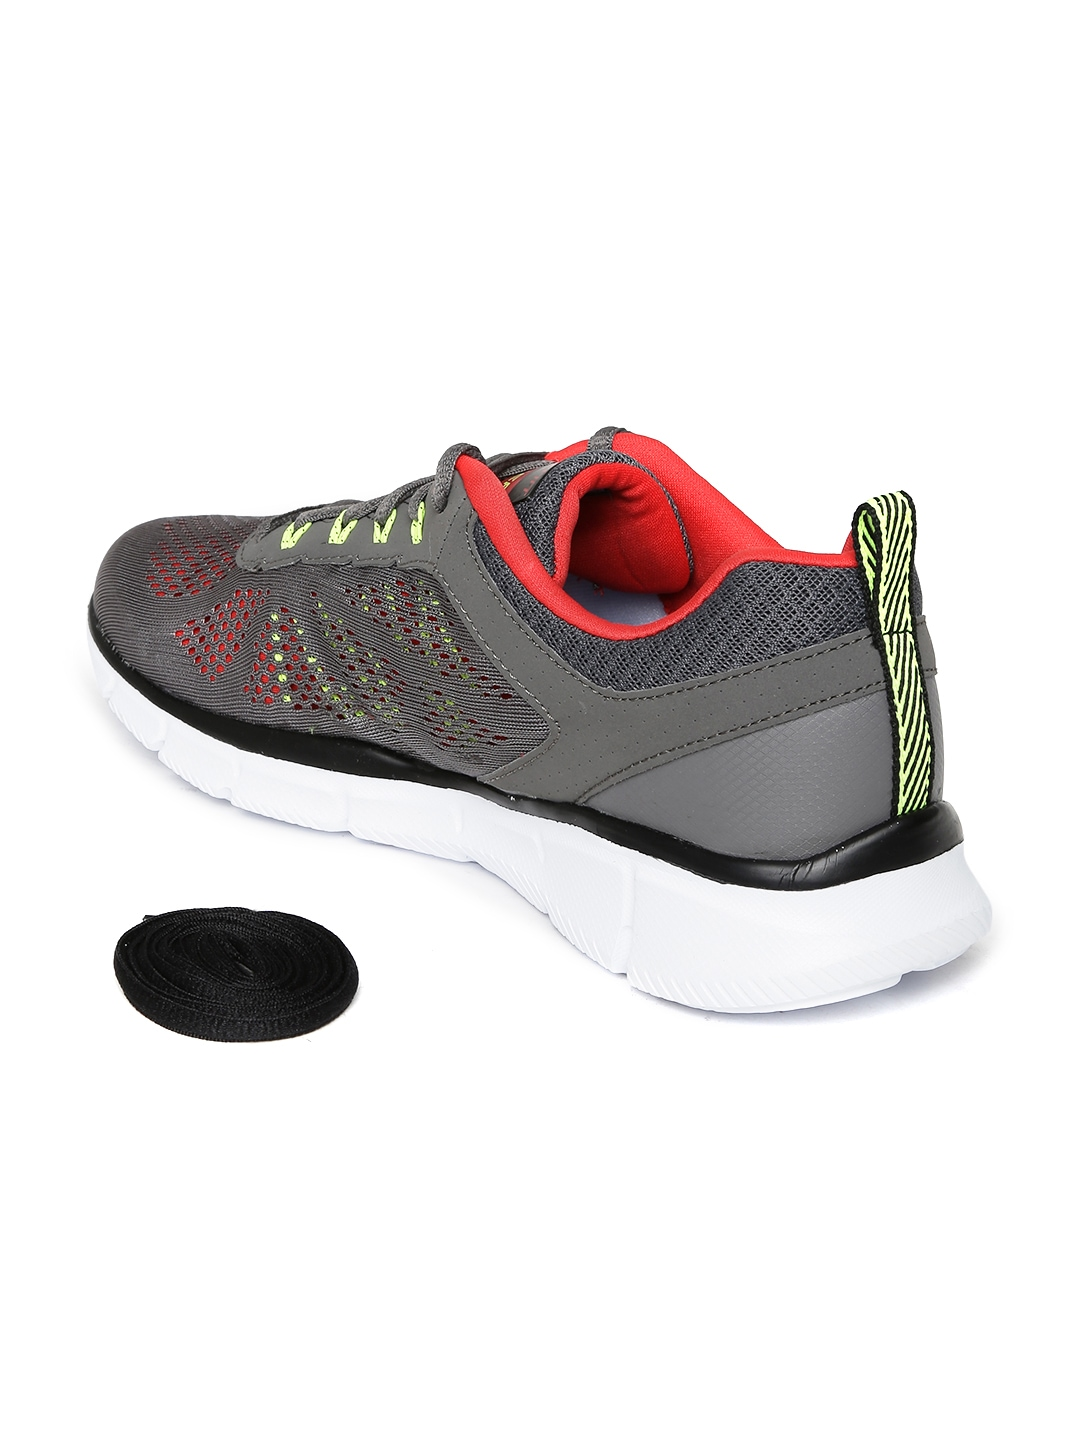 best deal on sports shoes 28 images best reebok sports